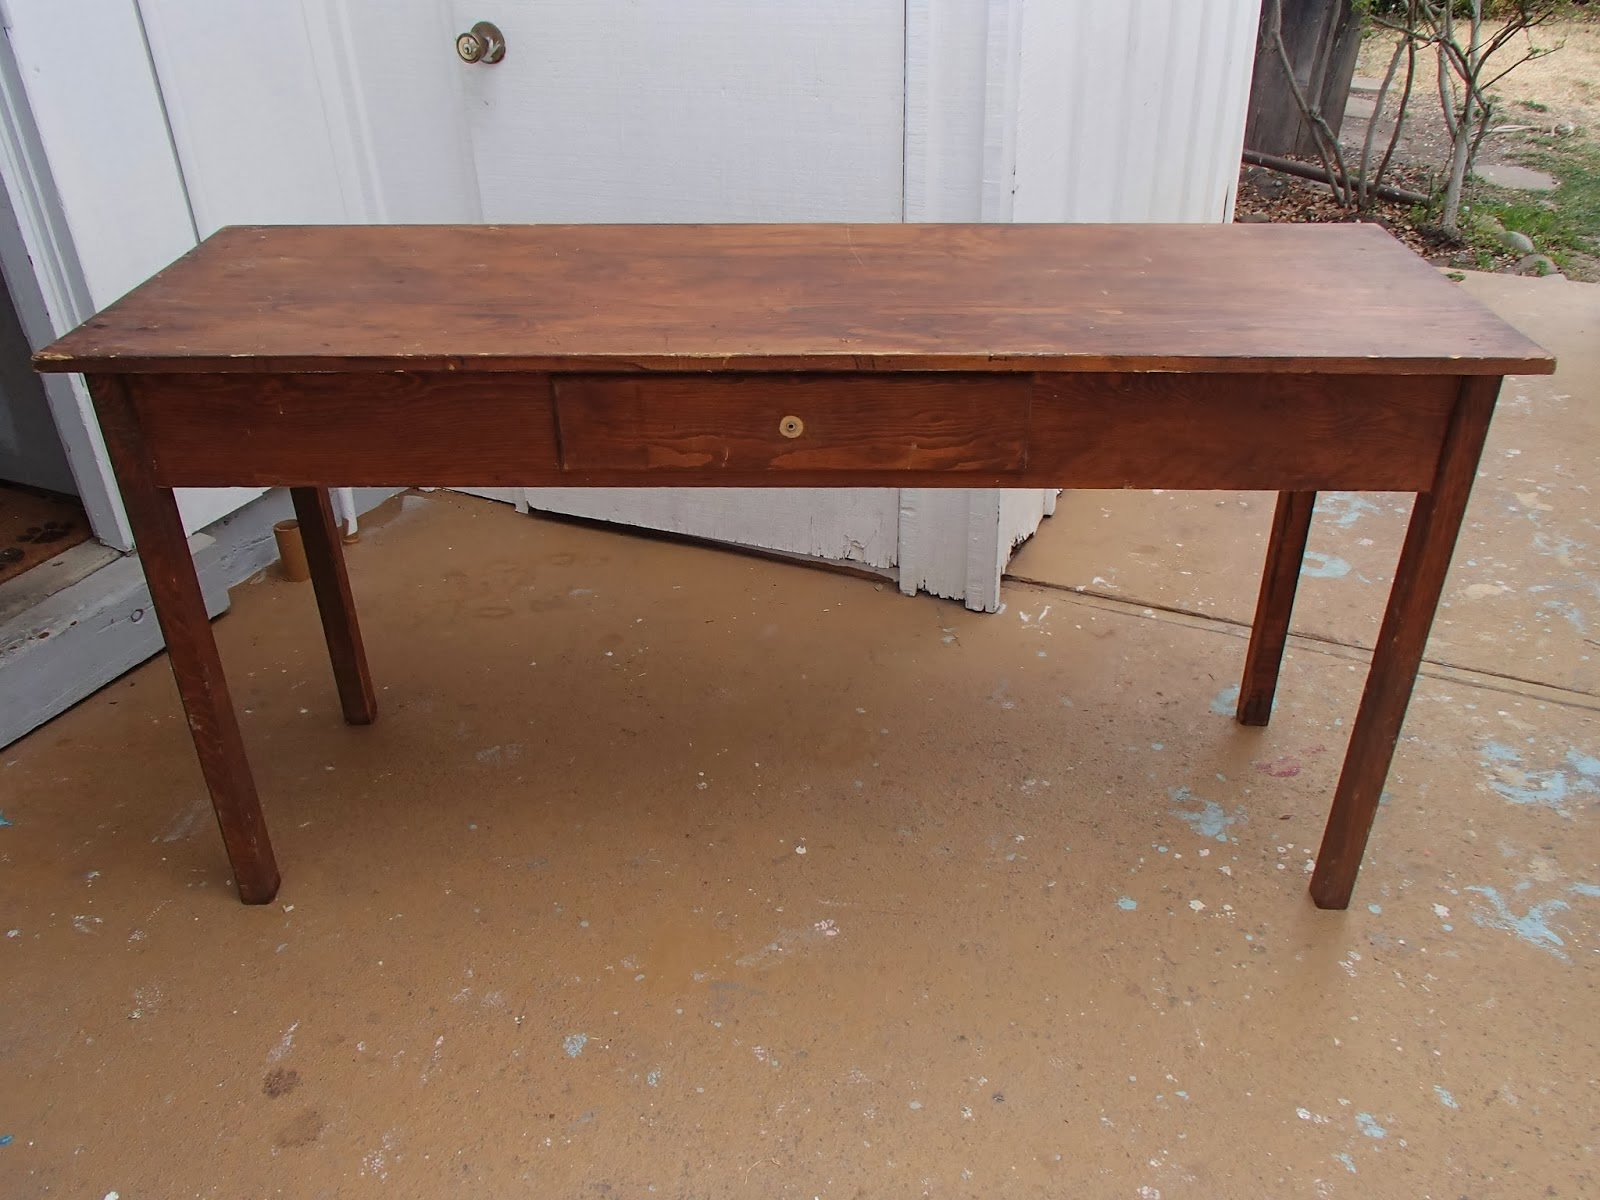 http://ddscottage.blogspot.com/2014/02/long-farm-tabledesk.html